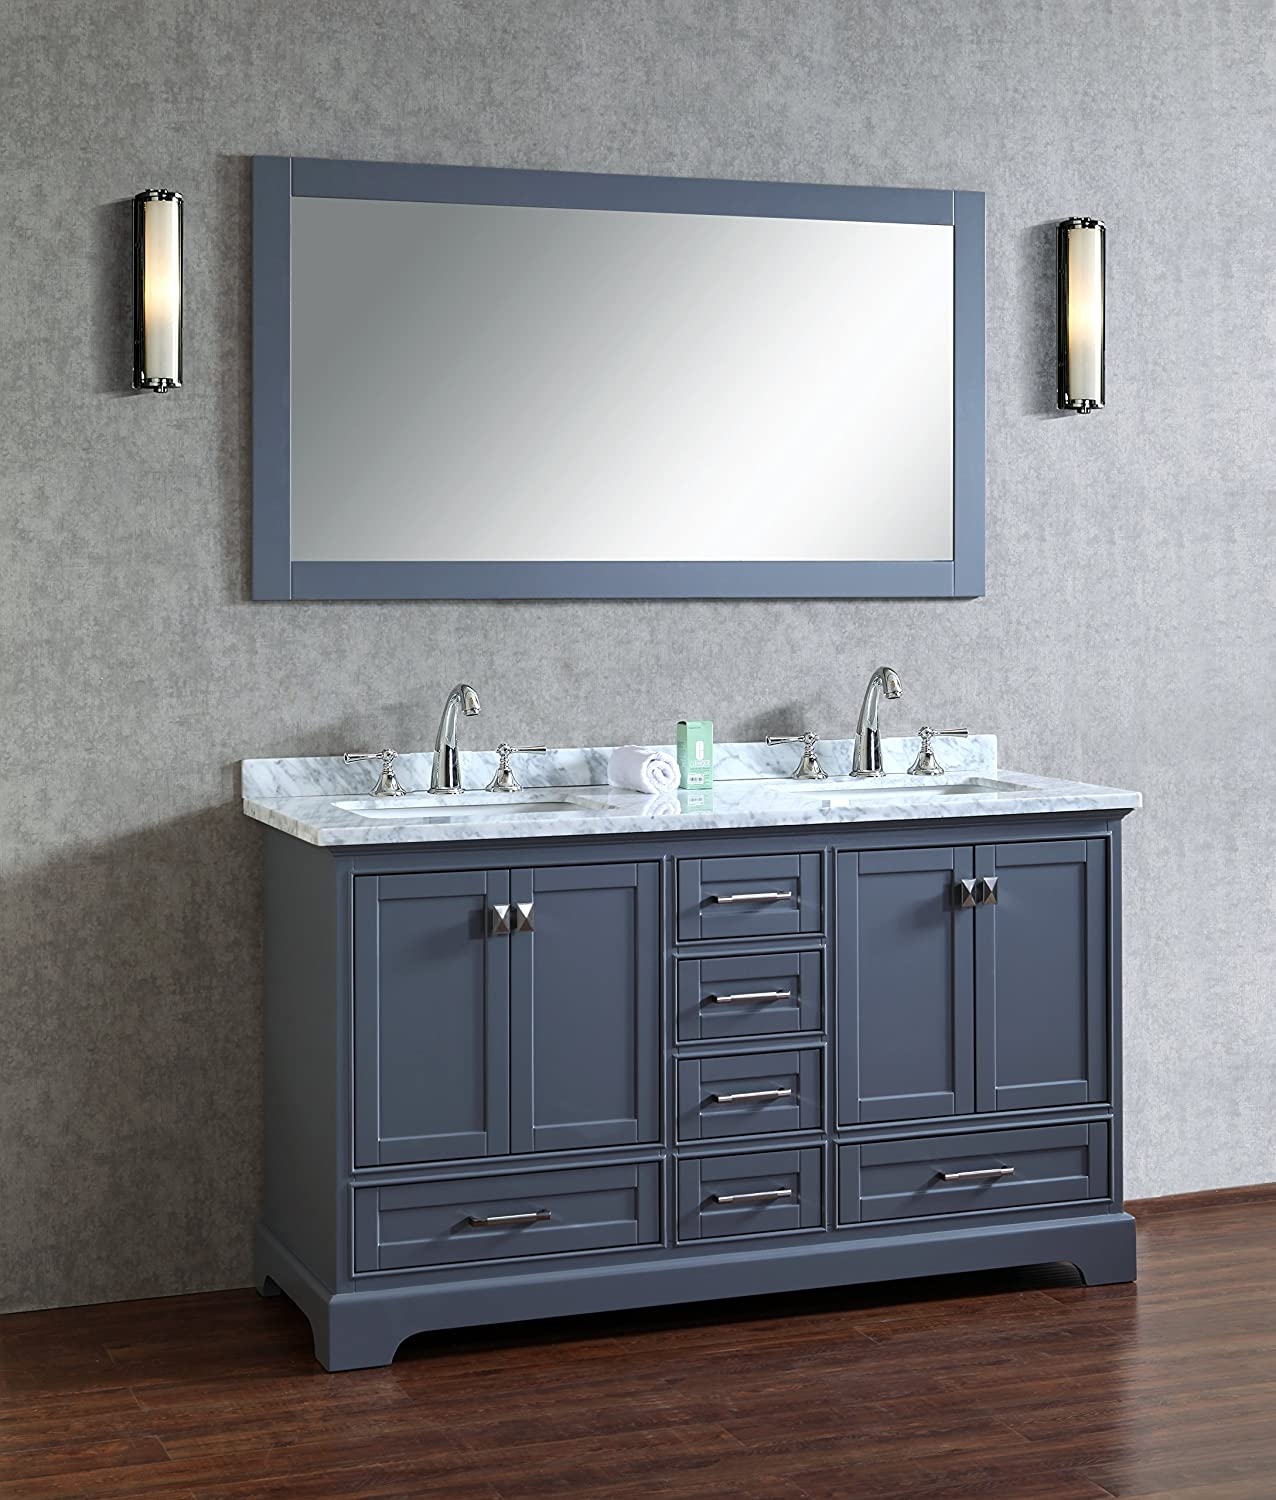 Stufurhome Chanel Grey 60 Inch Double Sink Bathroom Vanity With Mirror      Amazon.com